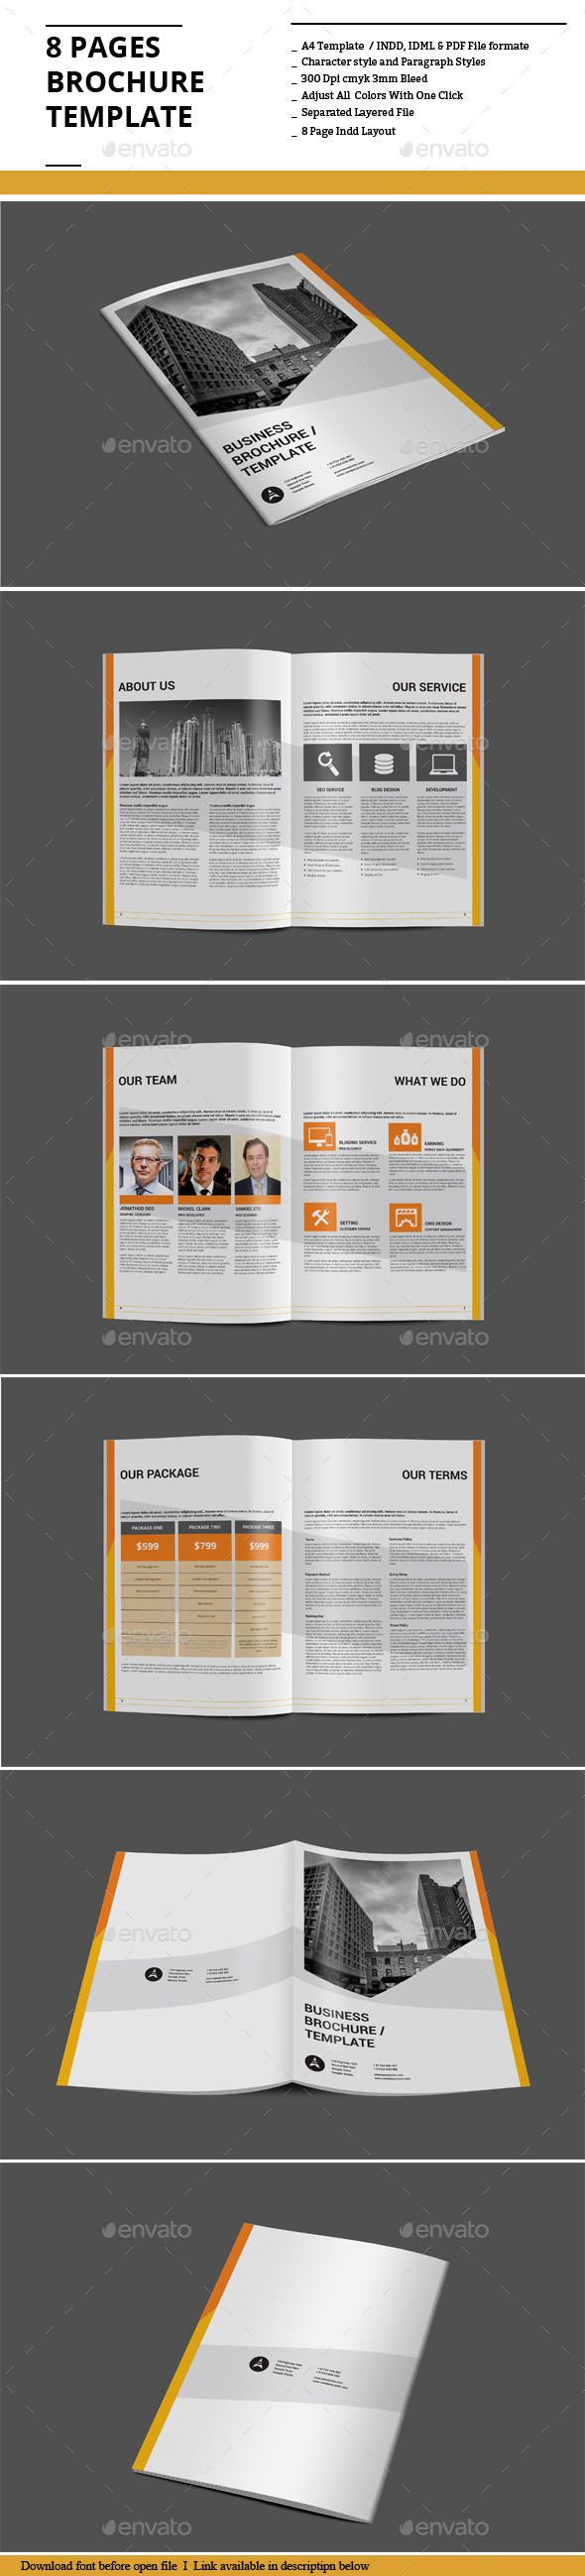 8 pages brochure template corporate brochures allblue envato